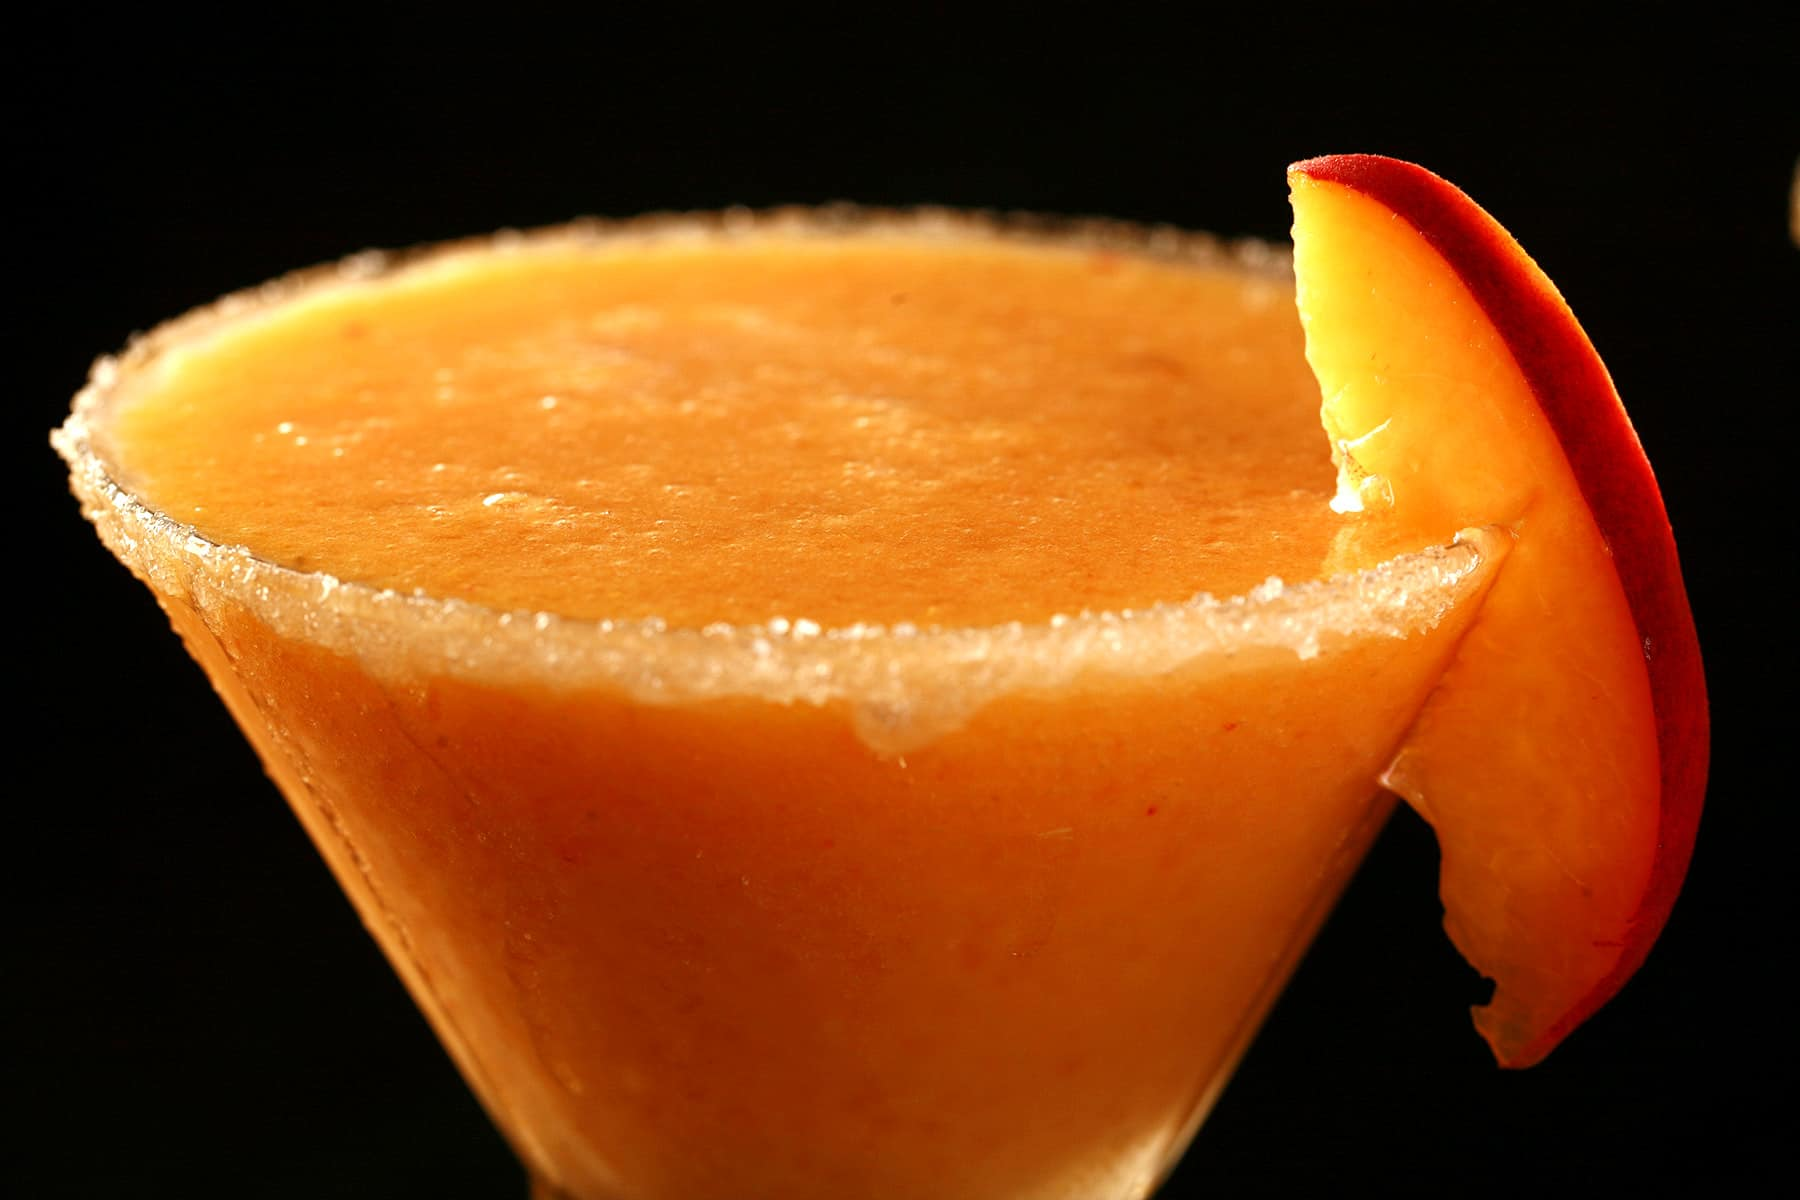 A close up view of a daiquiri made from fresh peaches. It's in a martini cocktail glass rimmed with sugar and garnished with a slice of peach.